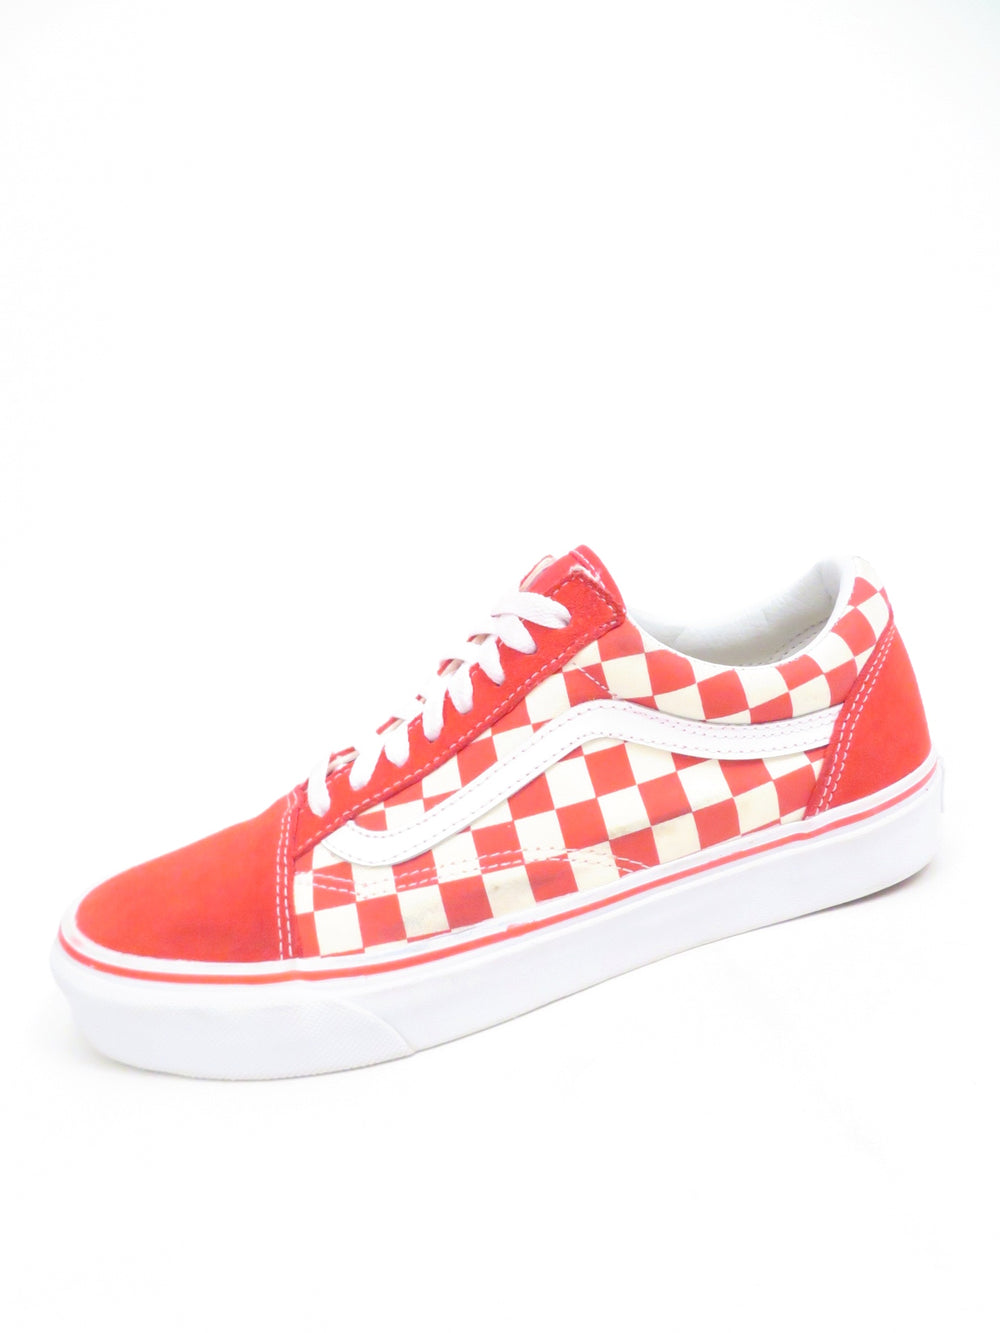 vans 'old skool' red/white checkered shoes. features signature stripe at uppers sides and logo tab at soles heel. vulcanized waffle grip sole.